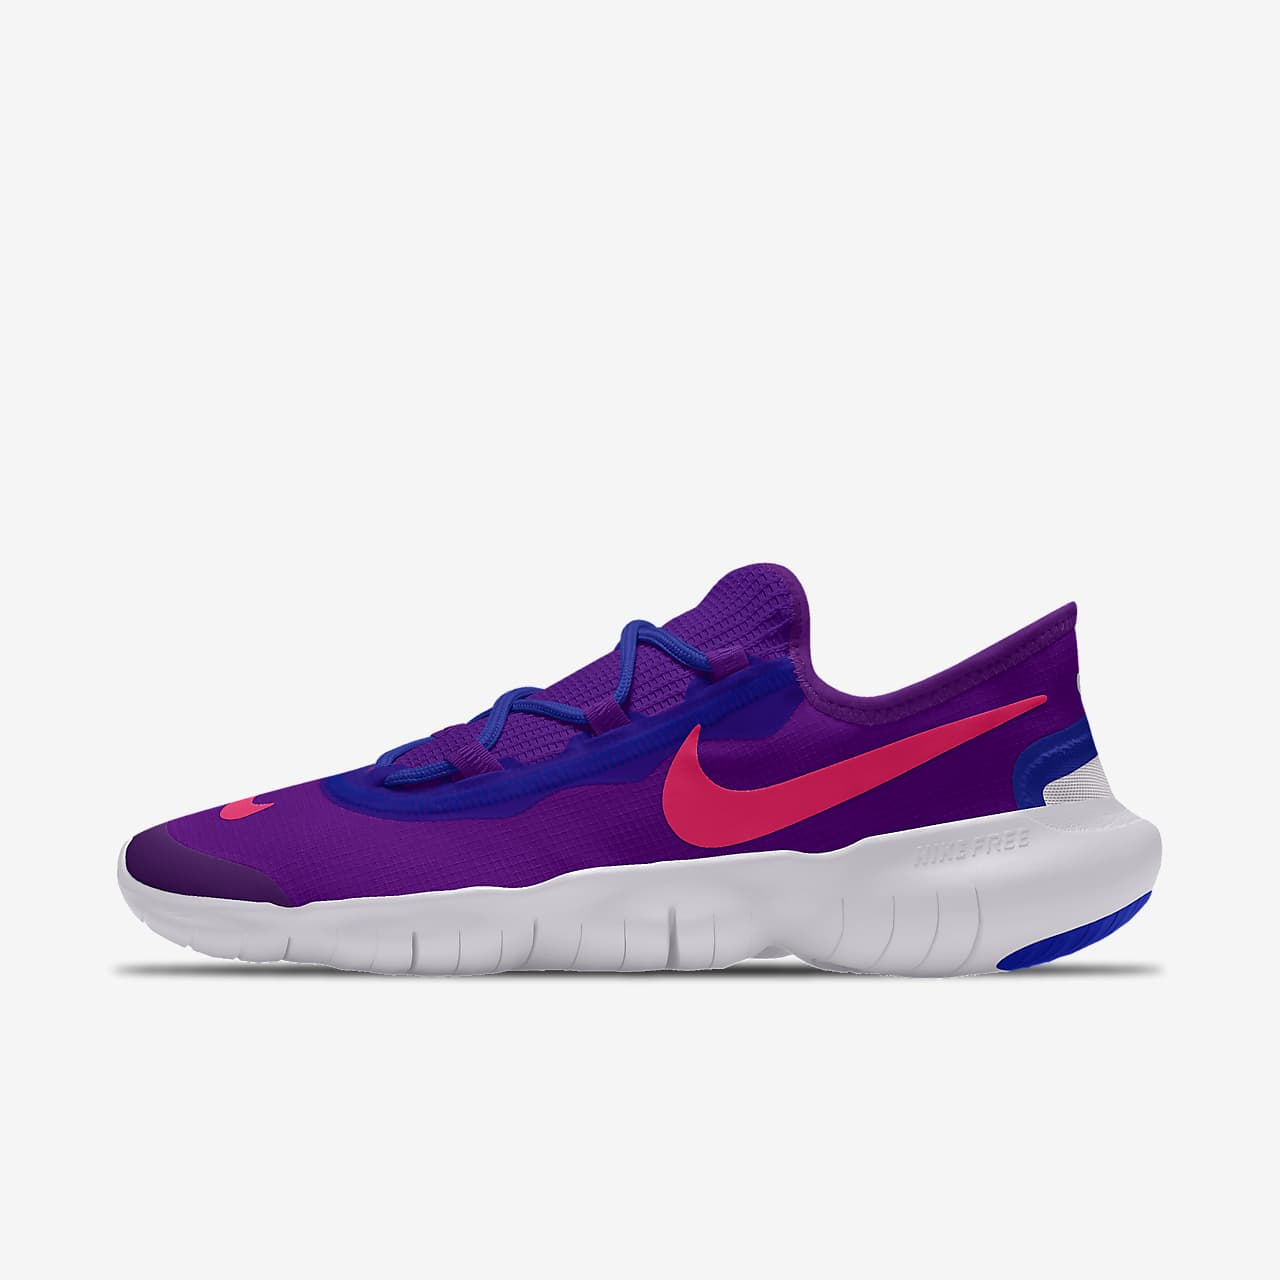 Nike Free RN 5.0 By You Zapatillas de running personalizables - Mujer